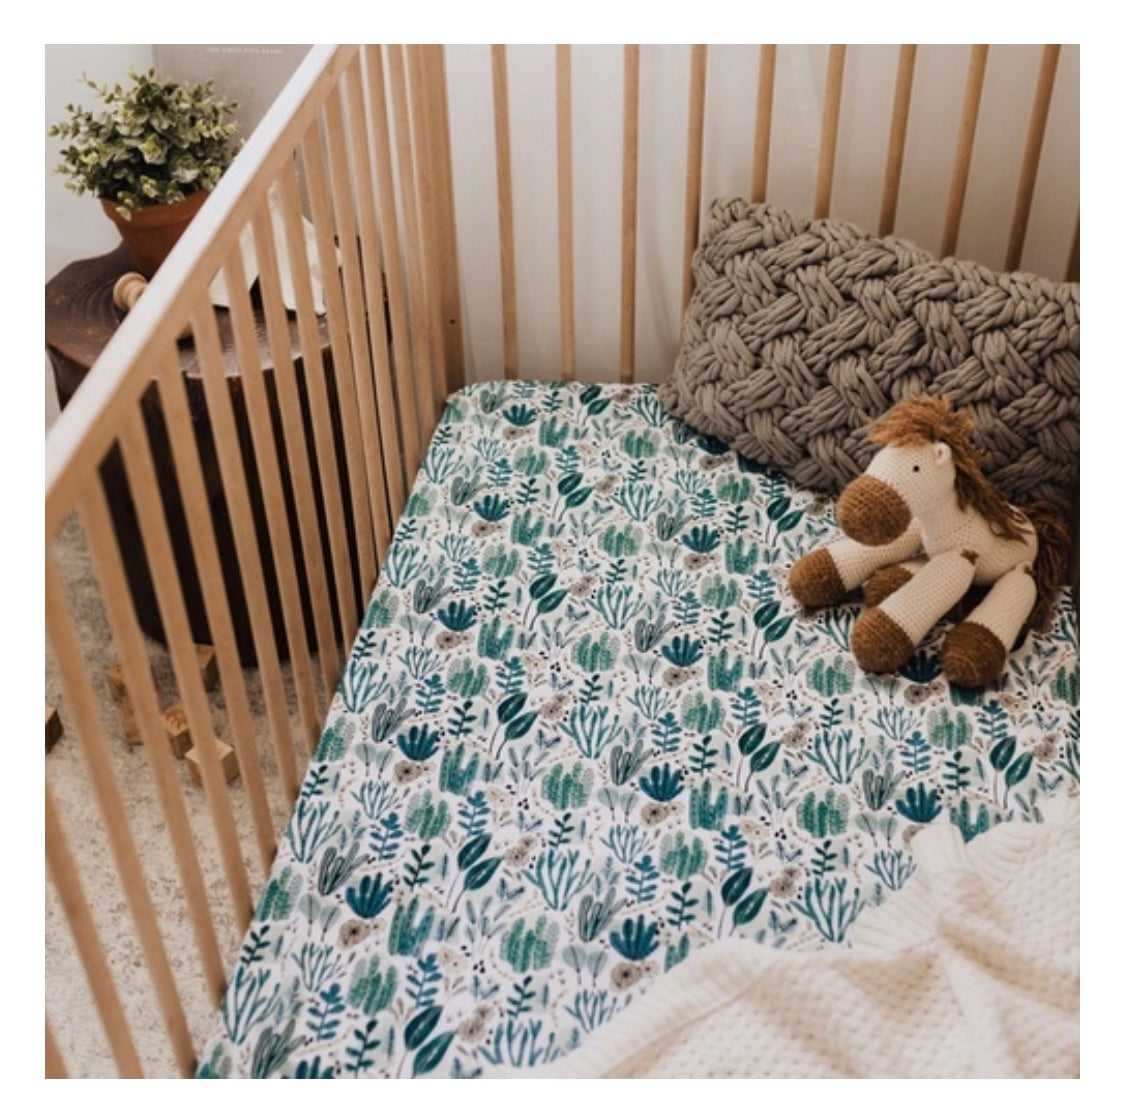 Snuggle Hunny Jersey Cot Sheets - Arizona